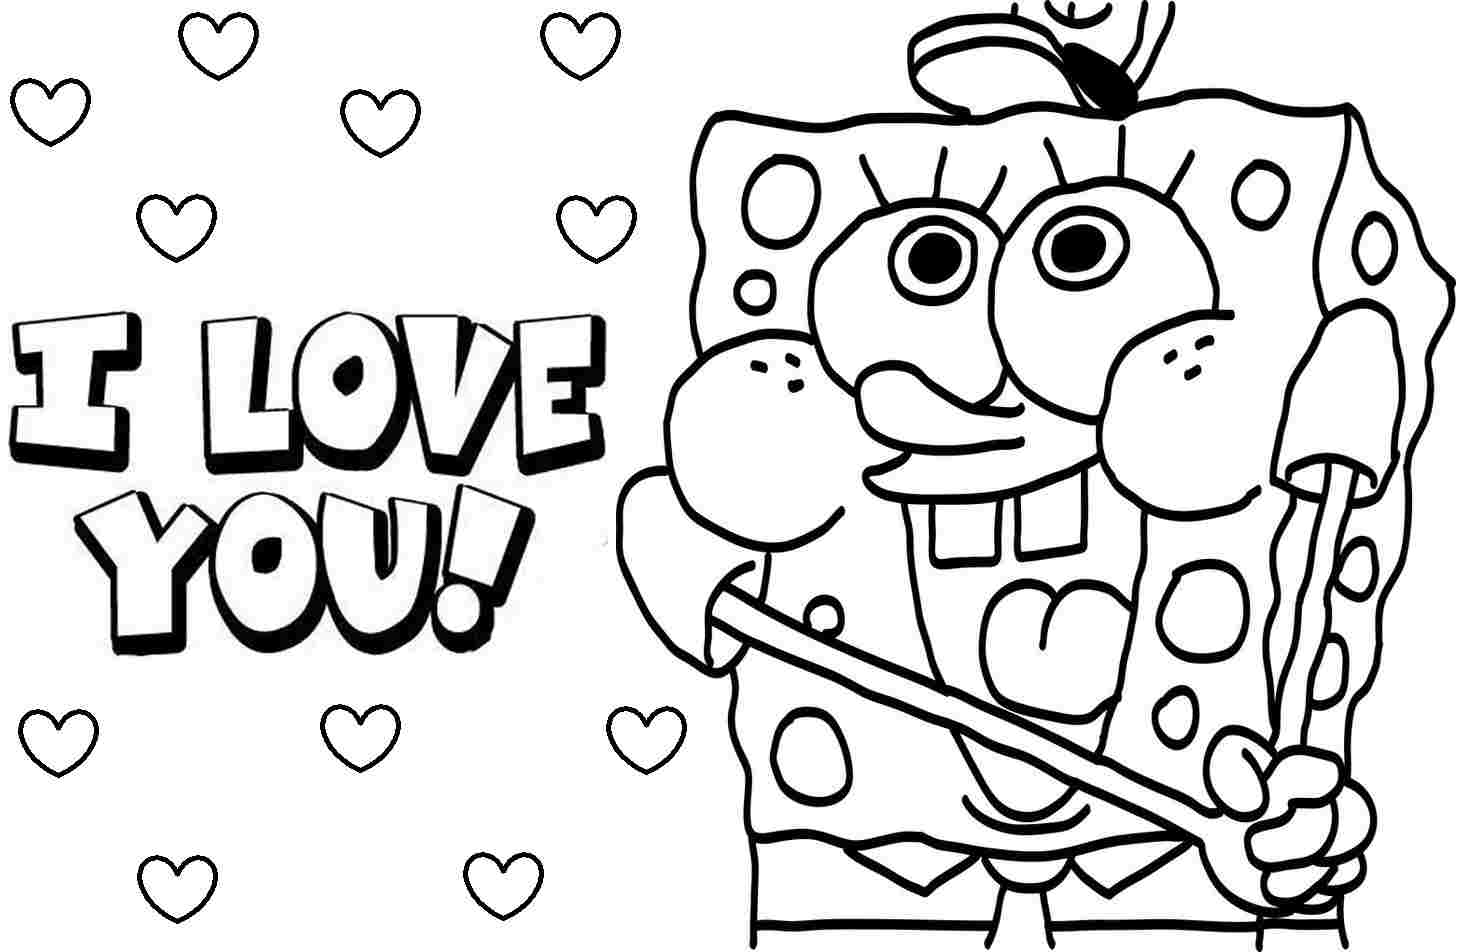 spongebob coloring page to download for free